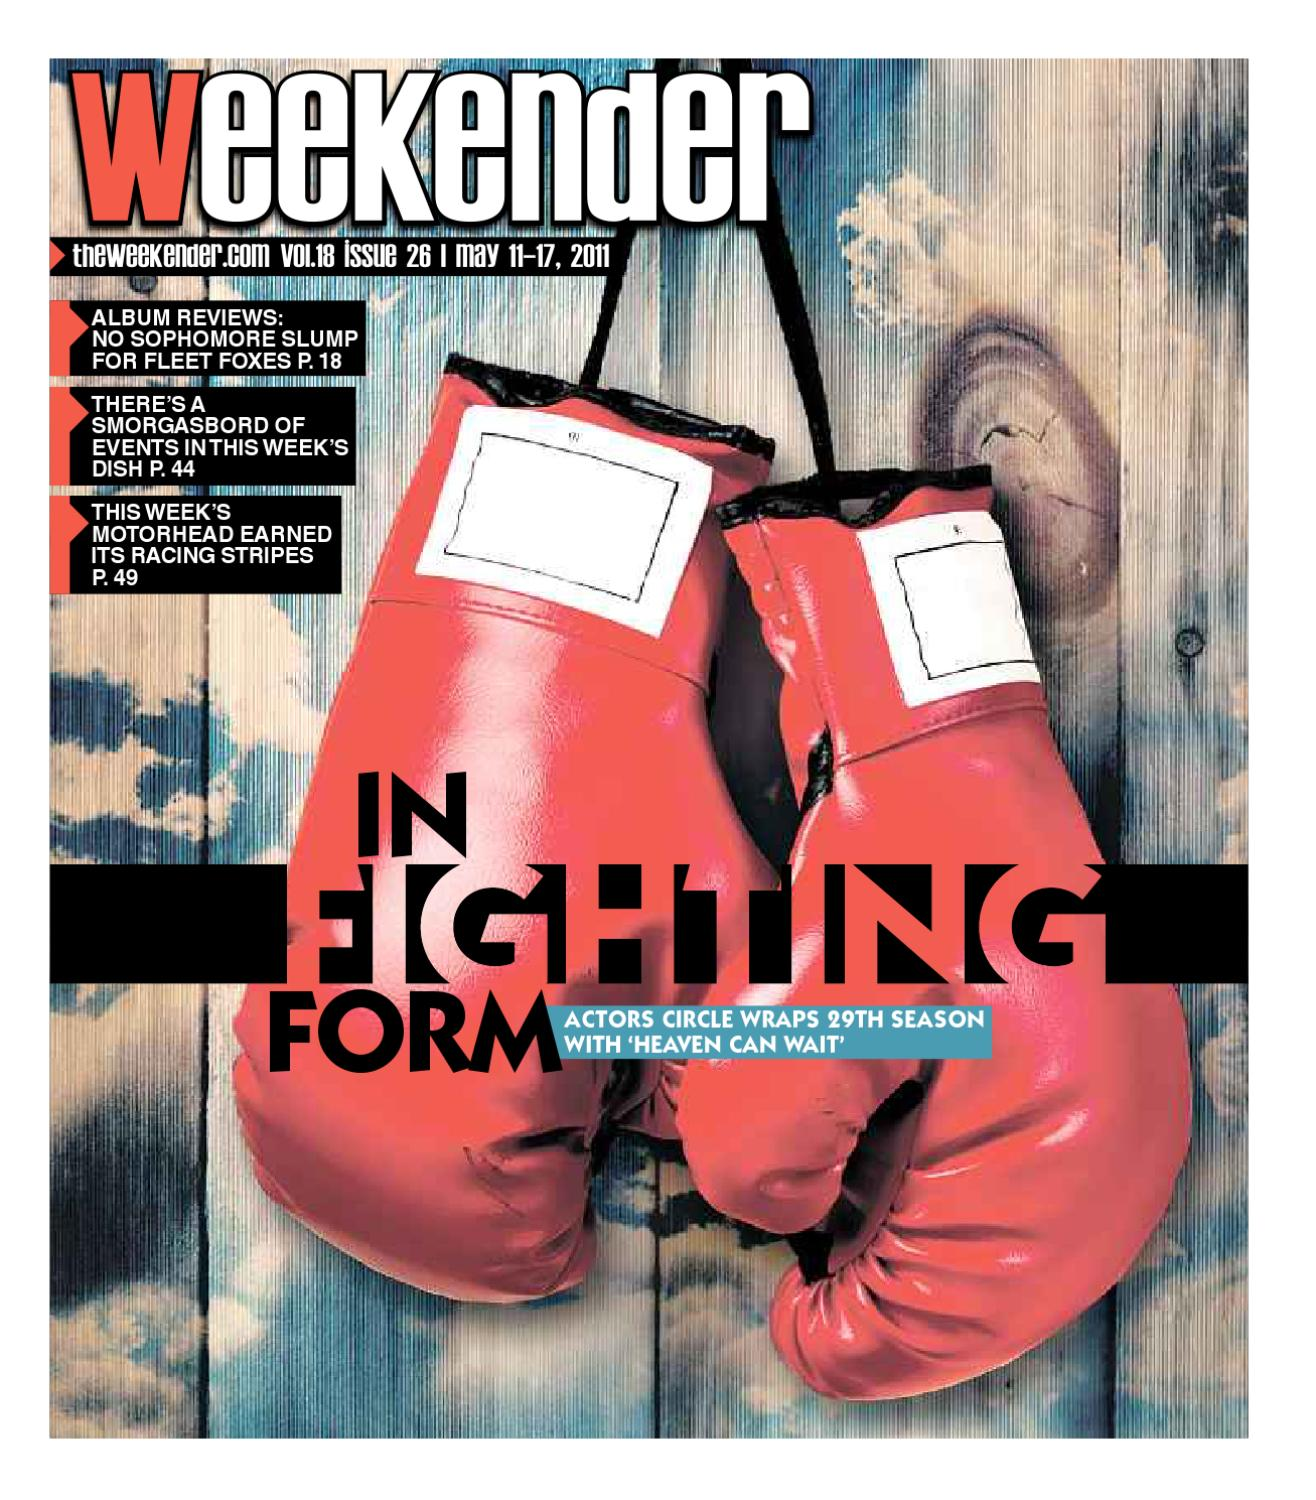 eed8316d2f7 The Weekender 05-11-2011 by The Wilkes-Barre Publishing Company - issuu